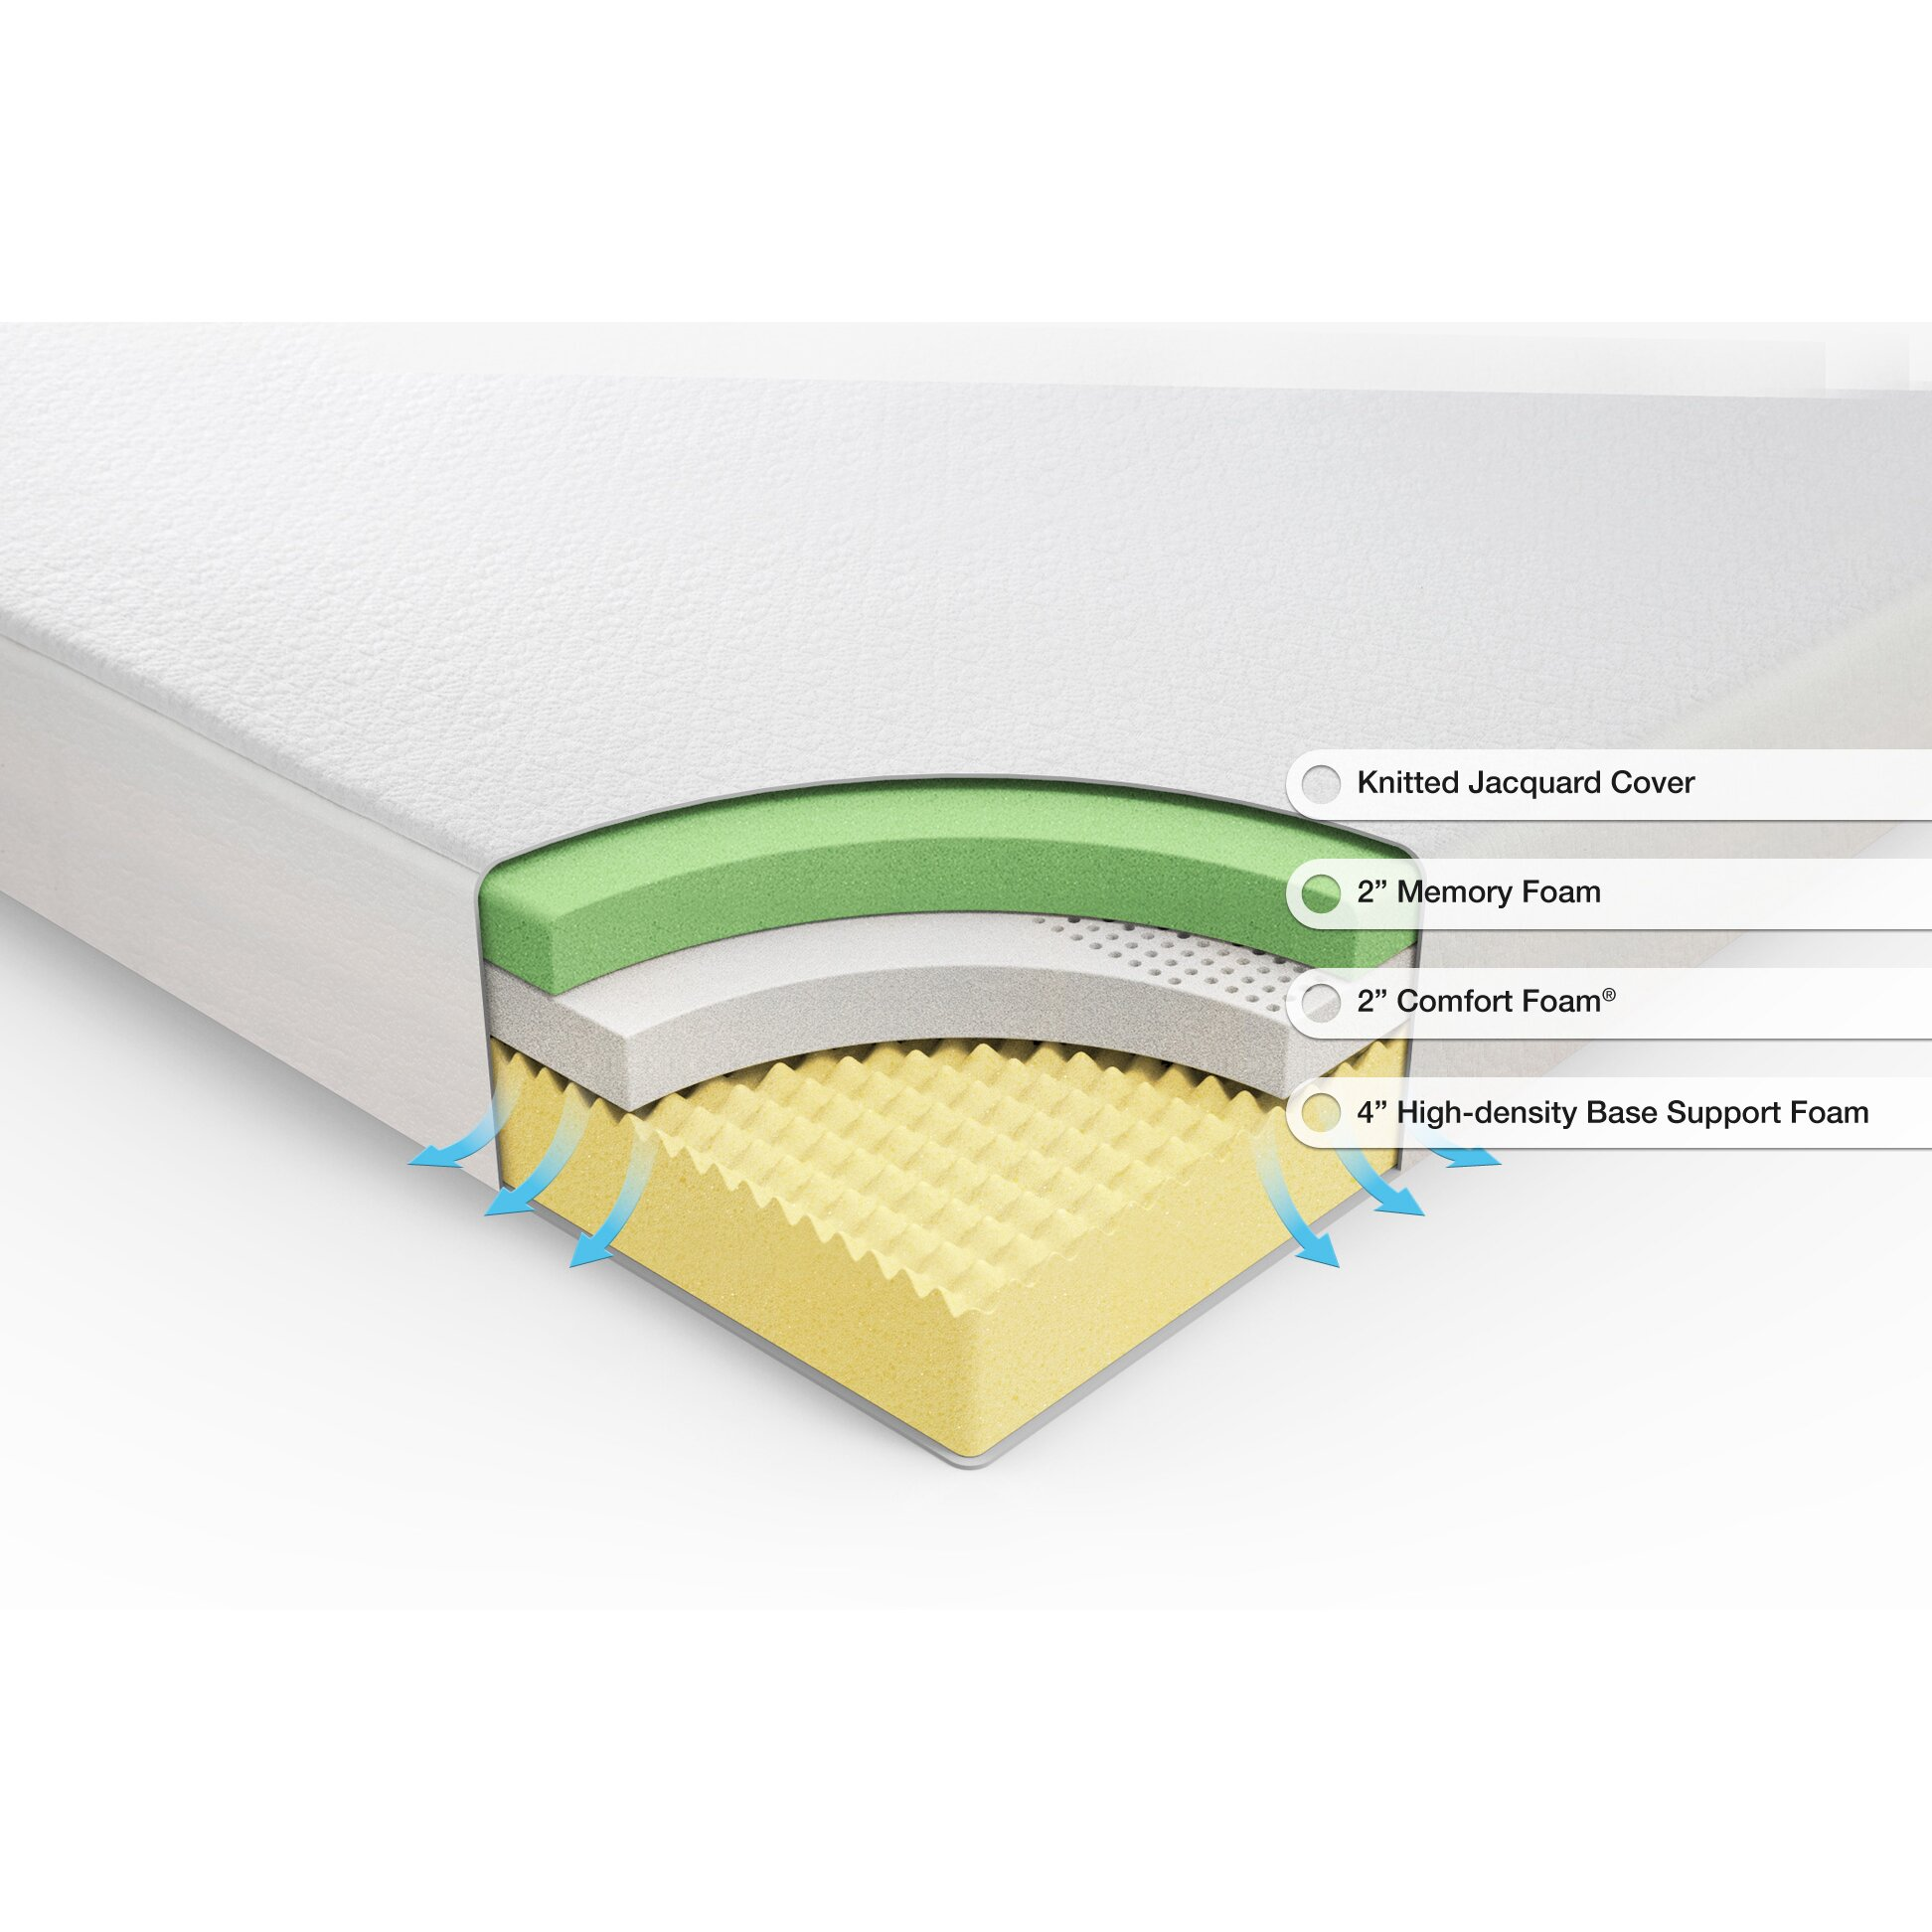 Anew edit 8 plush memory foam mattress reviews Mattress sale memory foam